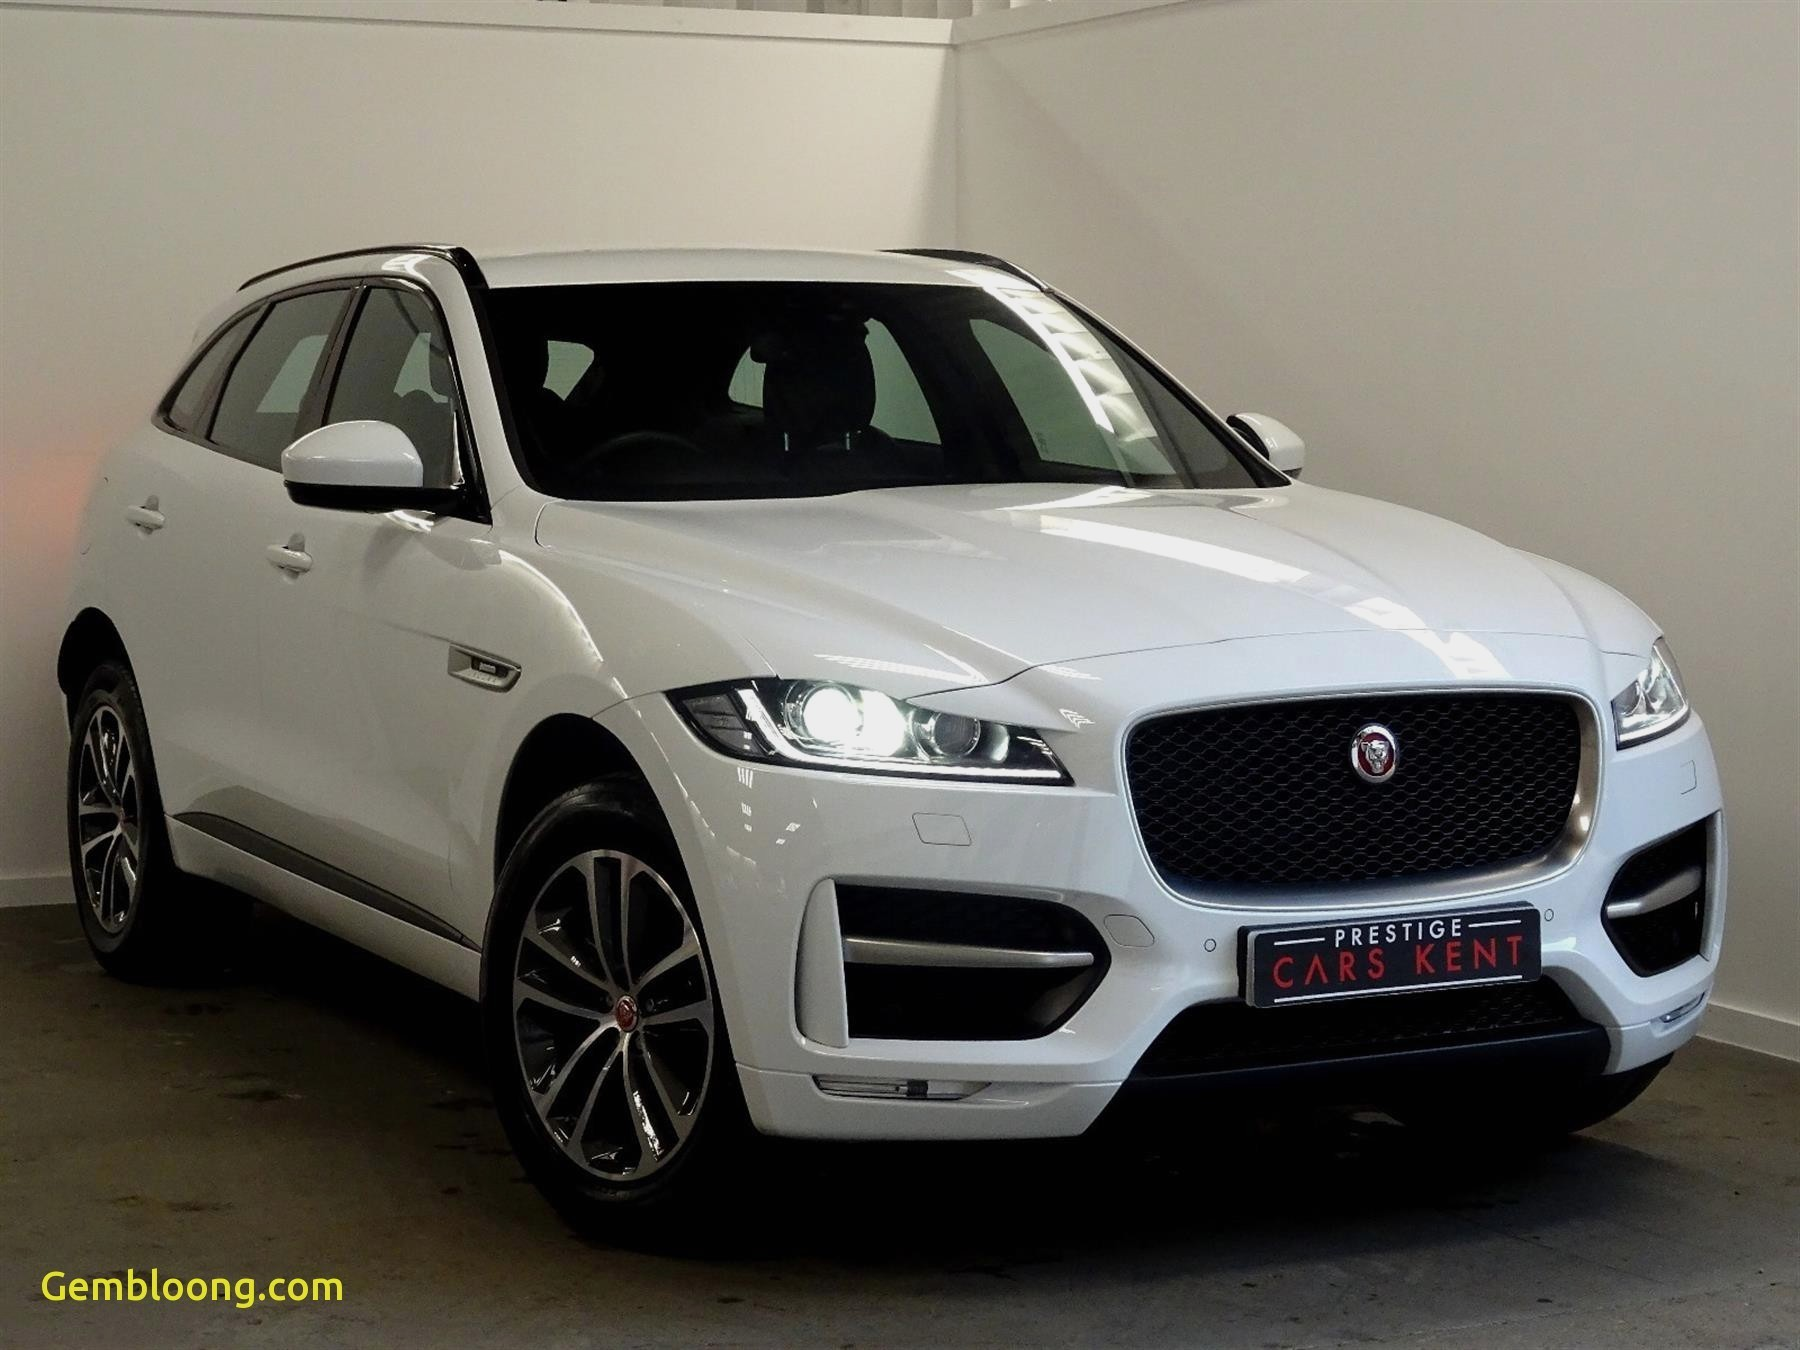 Best Used Cars for Sale Beautiful Best New Cars 2017 Awesome Jaguar for Sale Best Used Cars Near Me